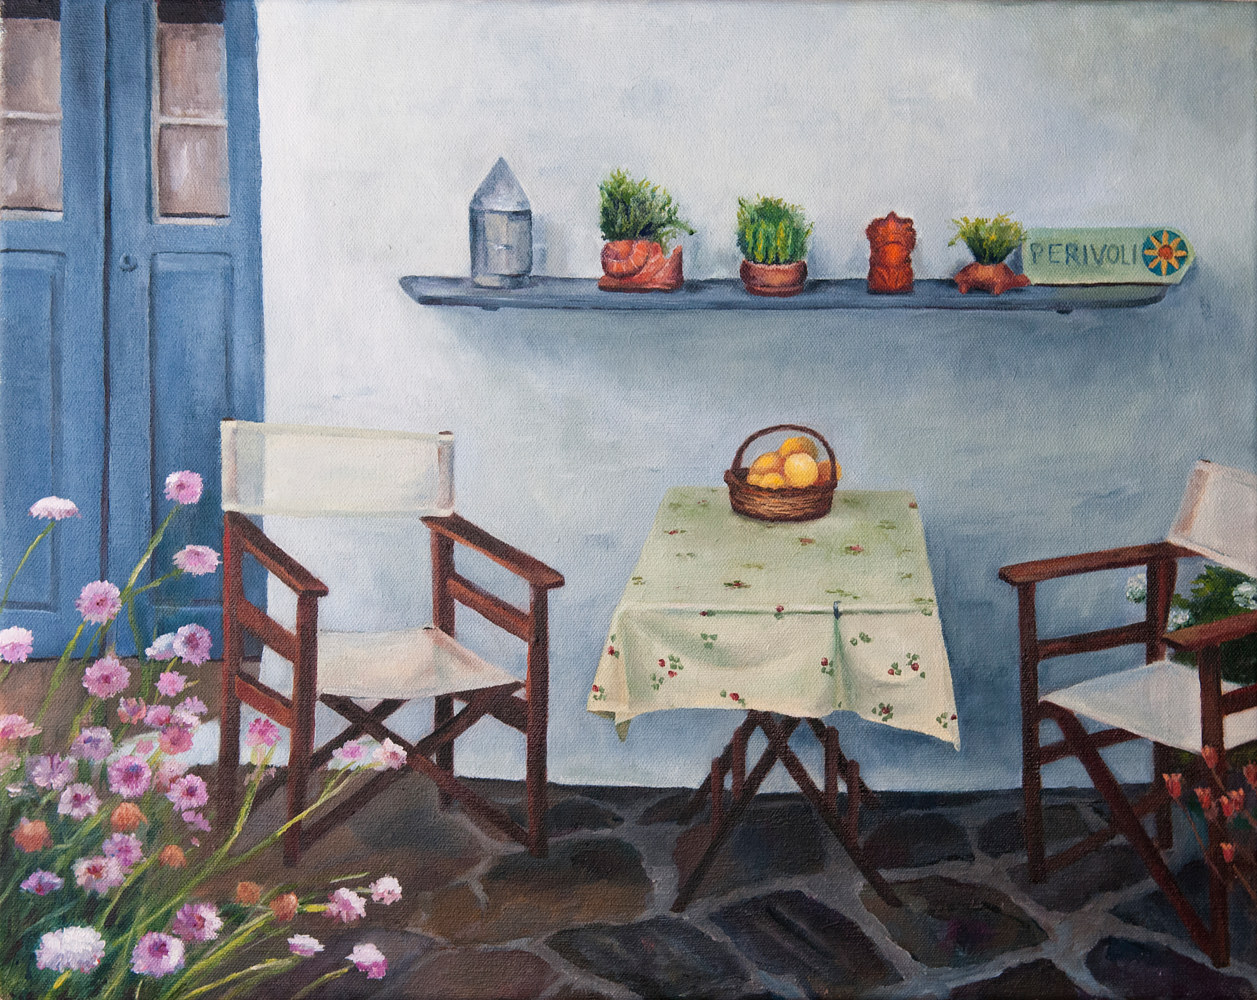 Oil painting Lemons by Kathleen Gross